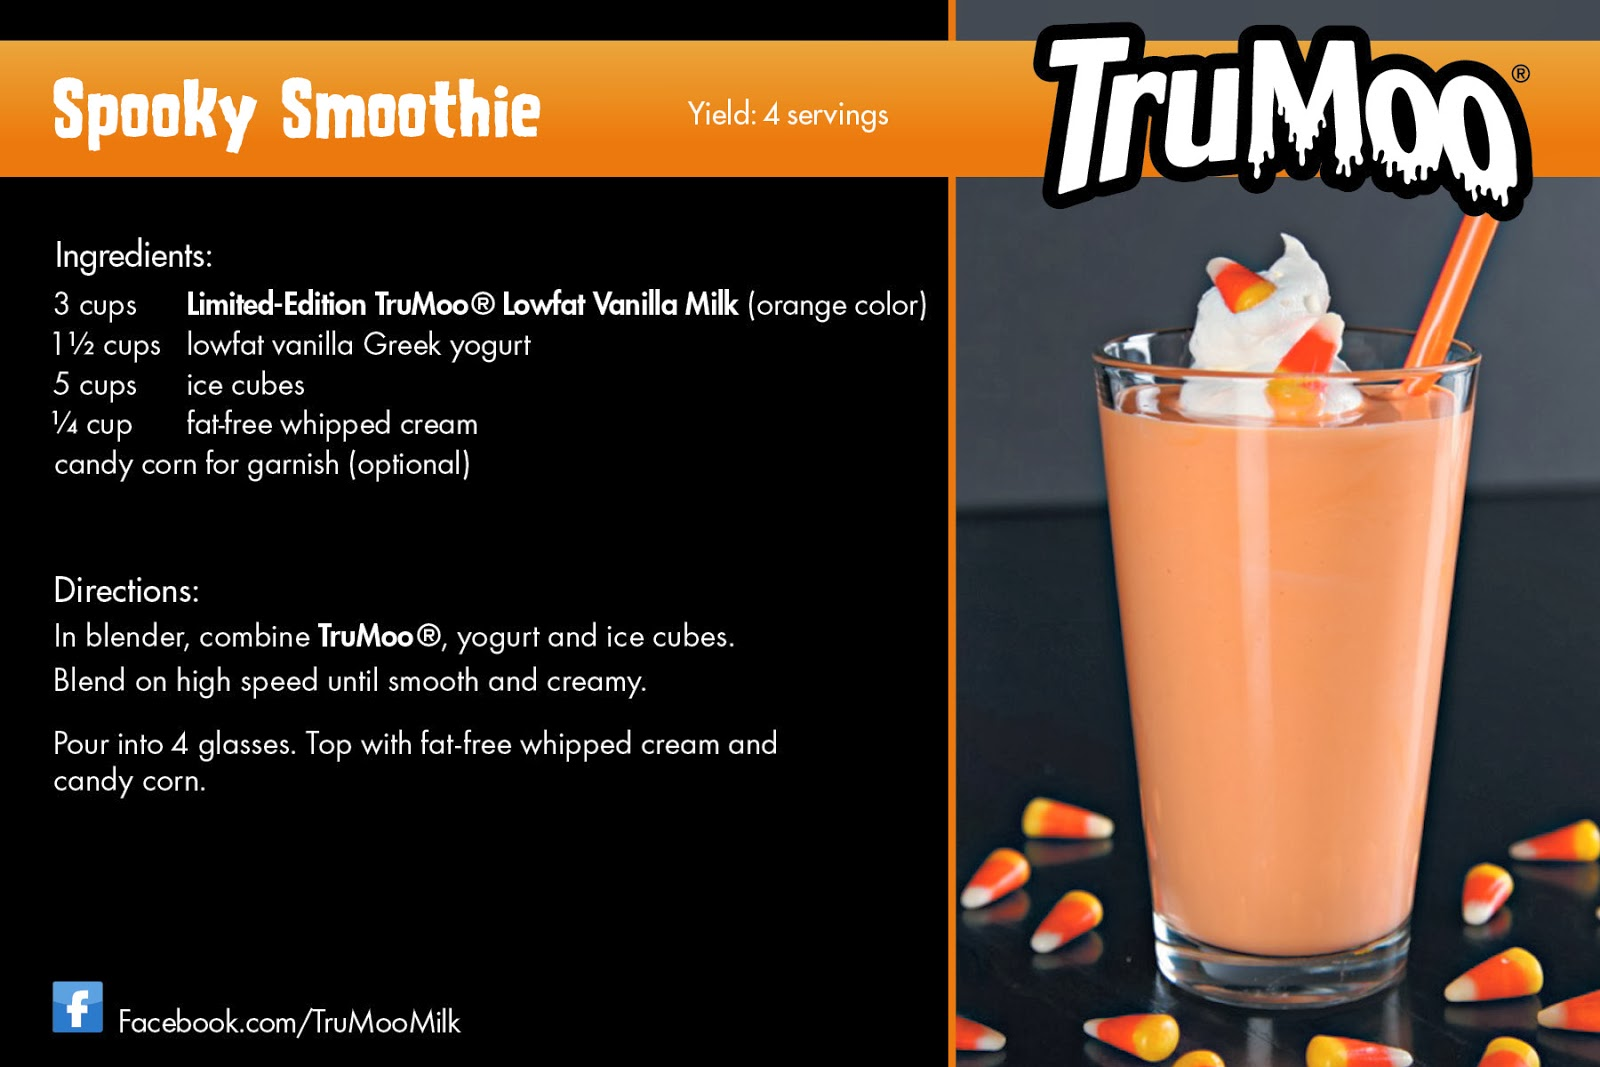 Spooky Smoothie Recipe Card